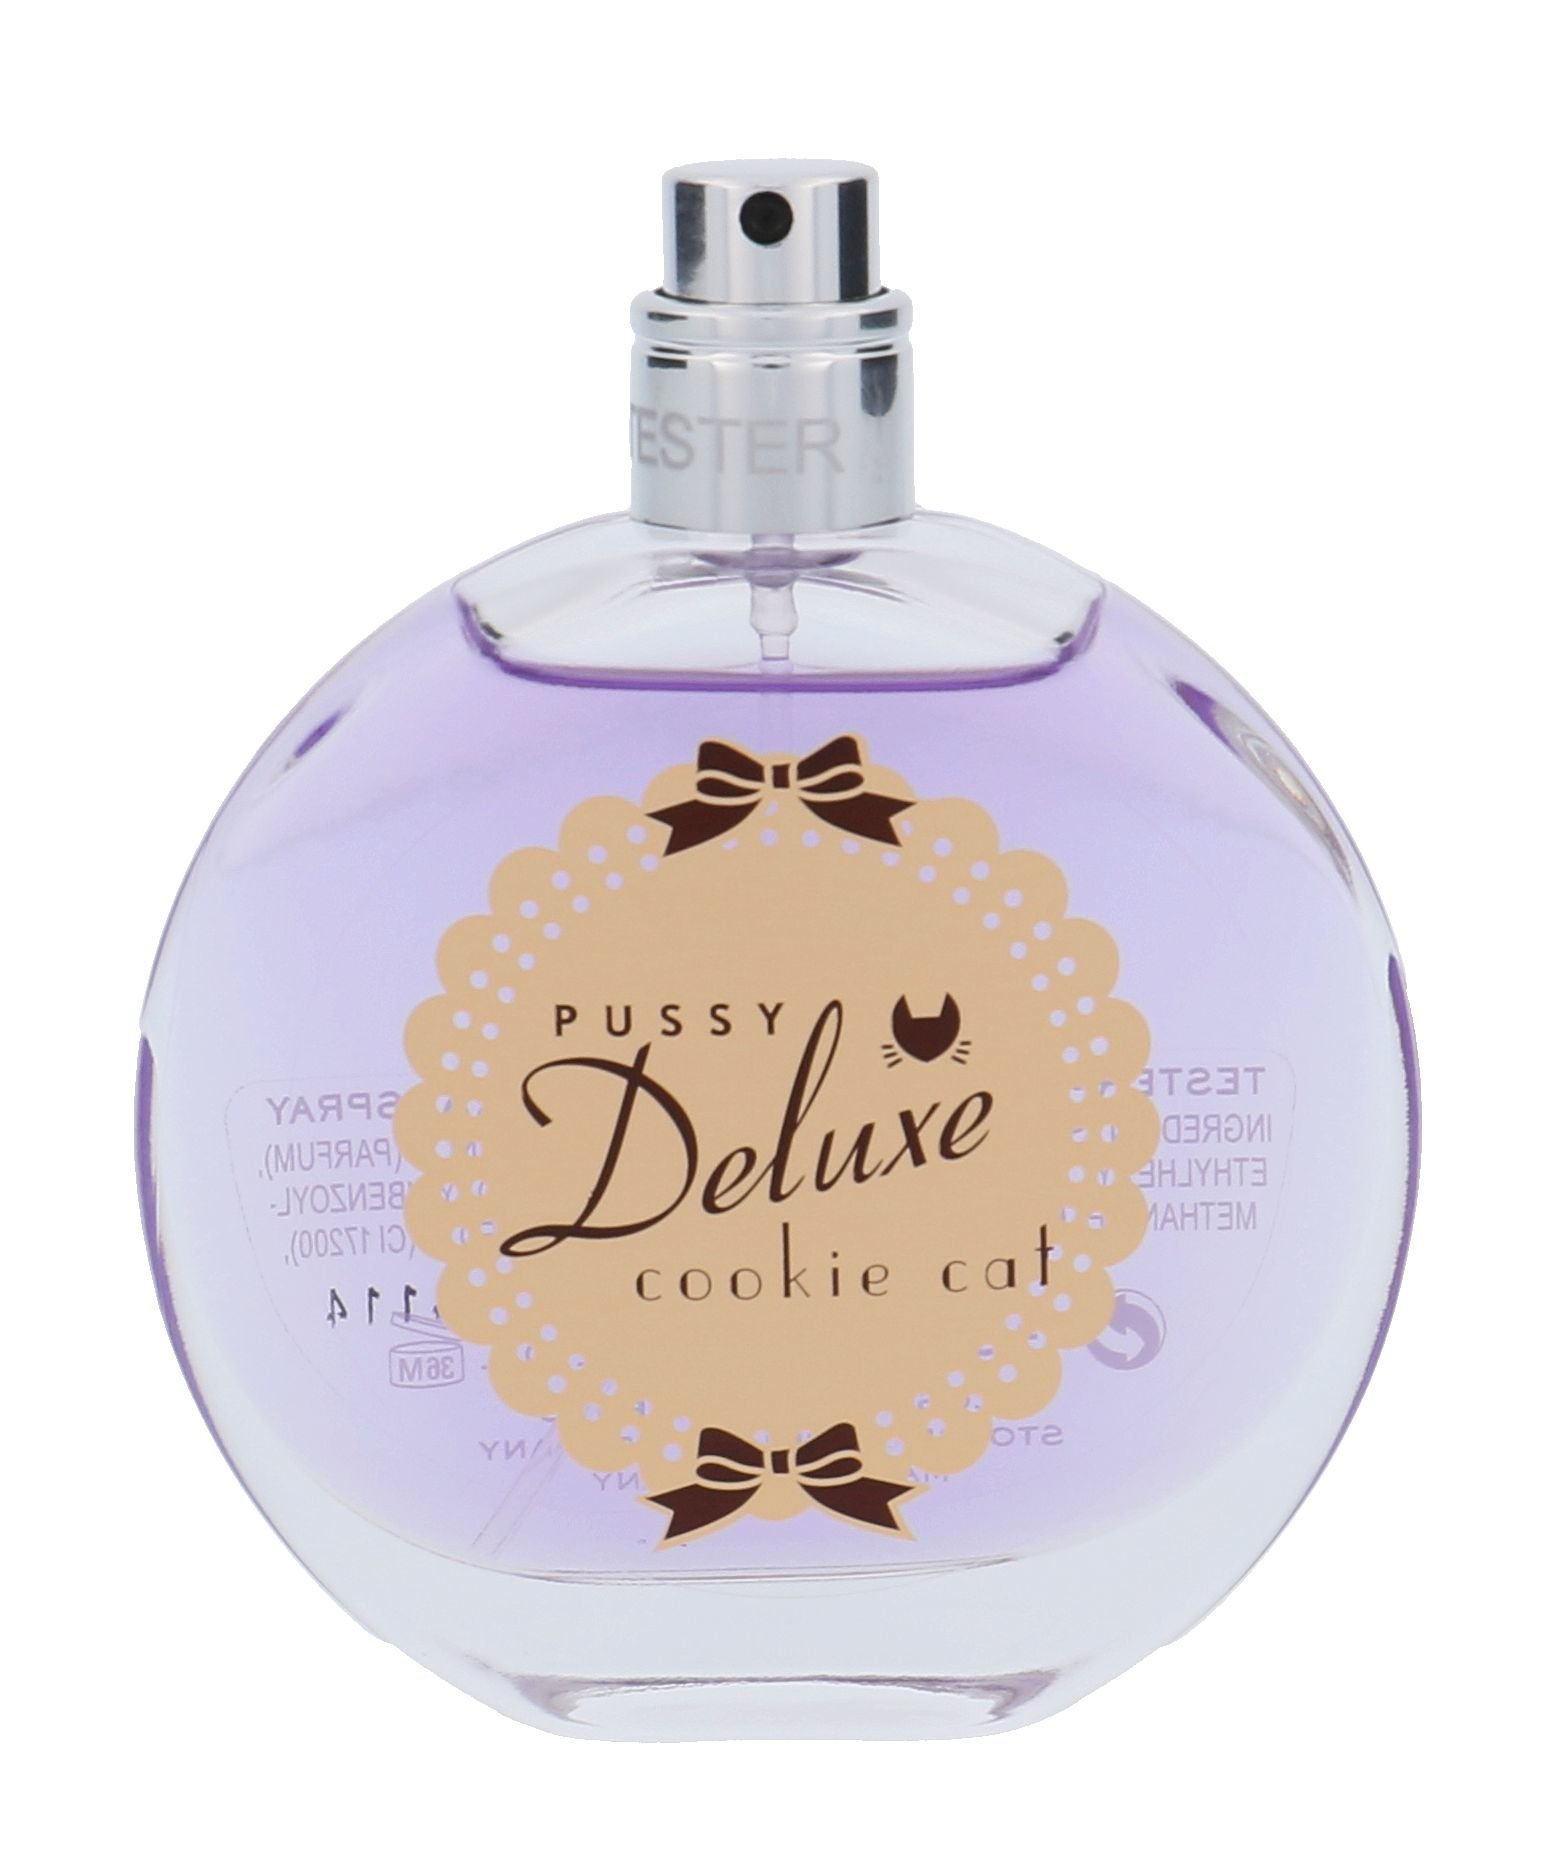 Pussy Deluxe Cookie Cat EDP 30ml